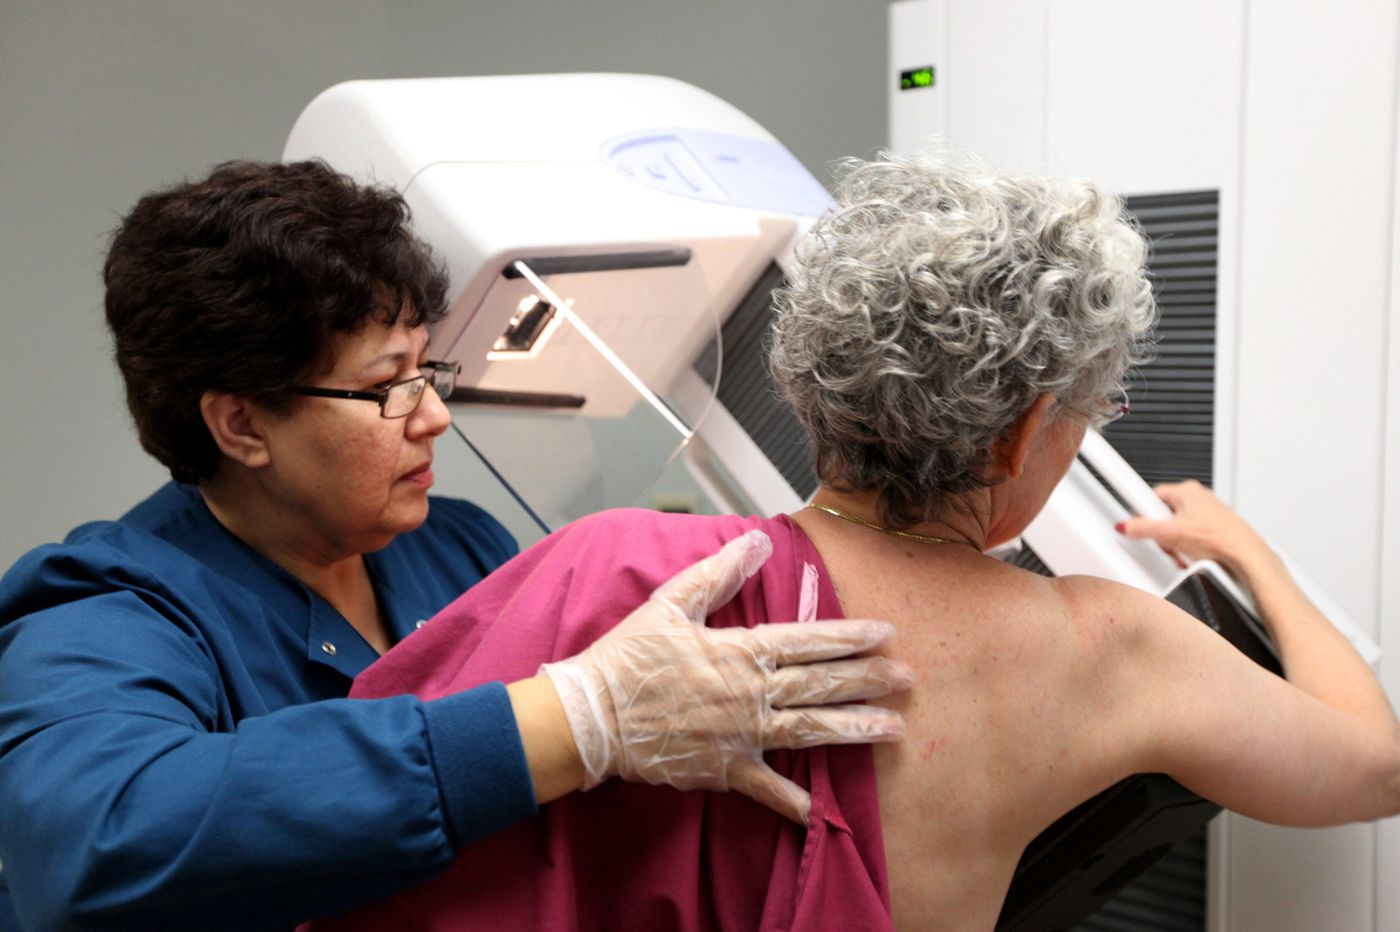 Screening or diagnostic mammogram? The difference could cost you